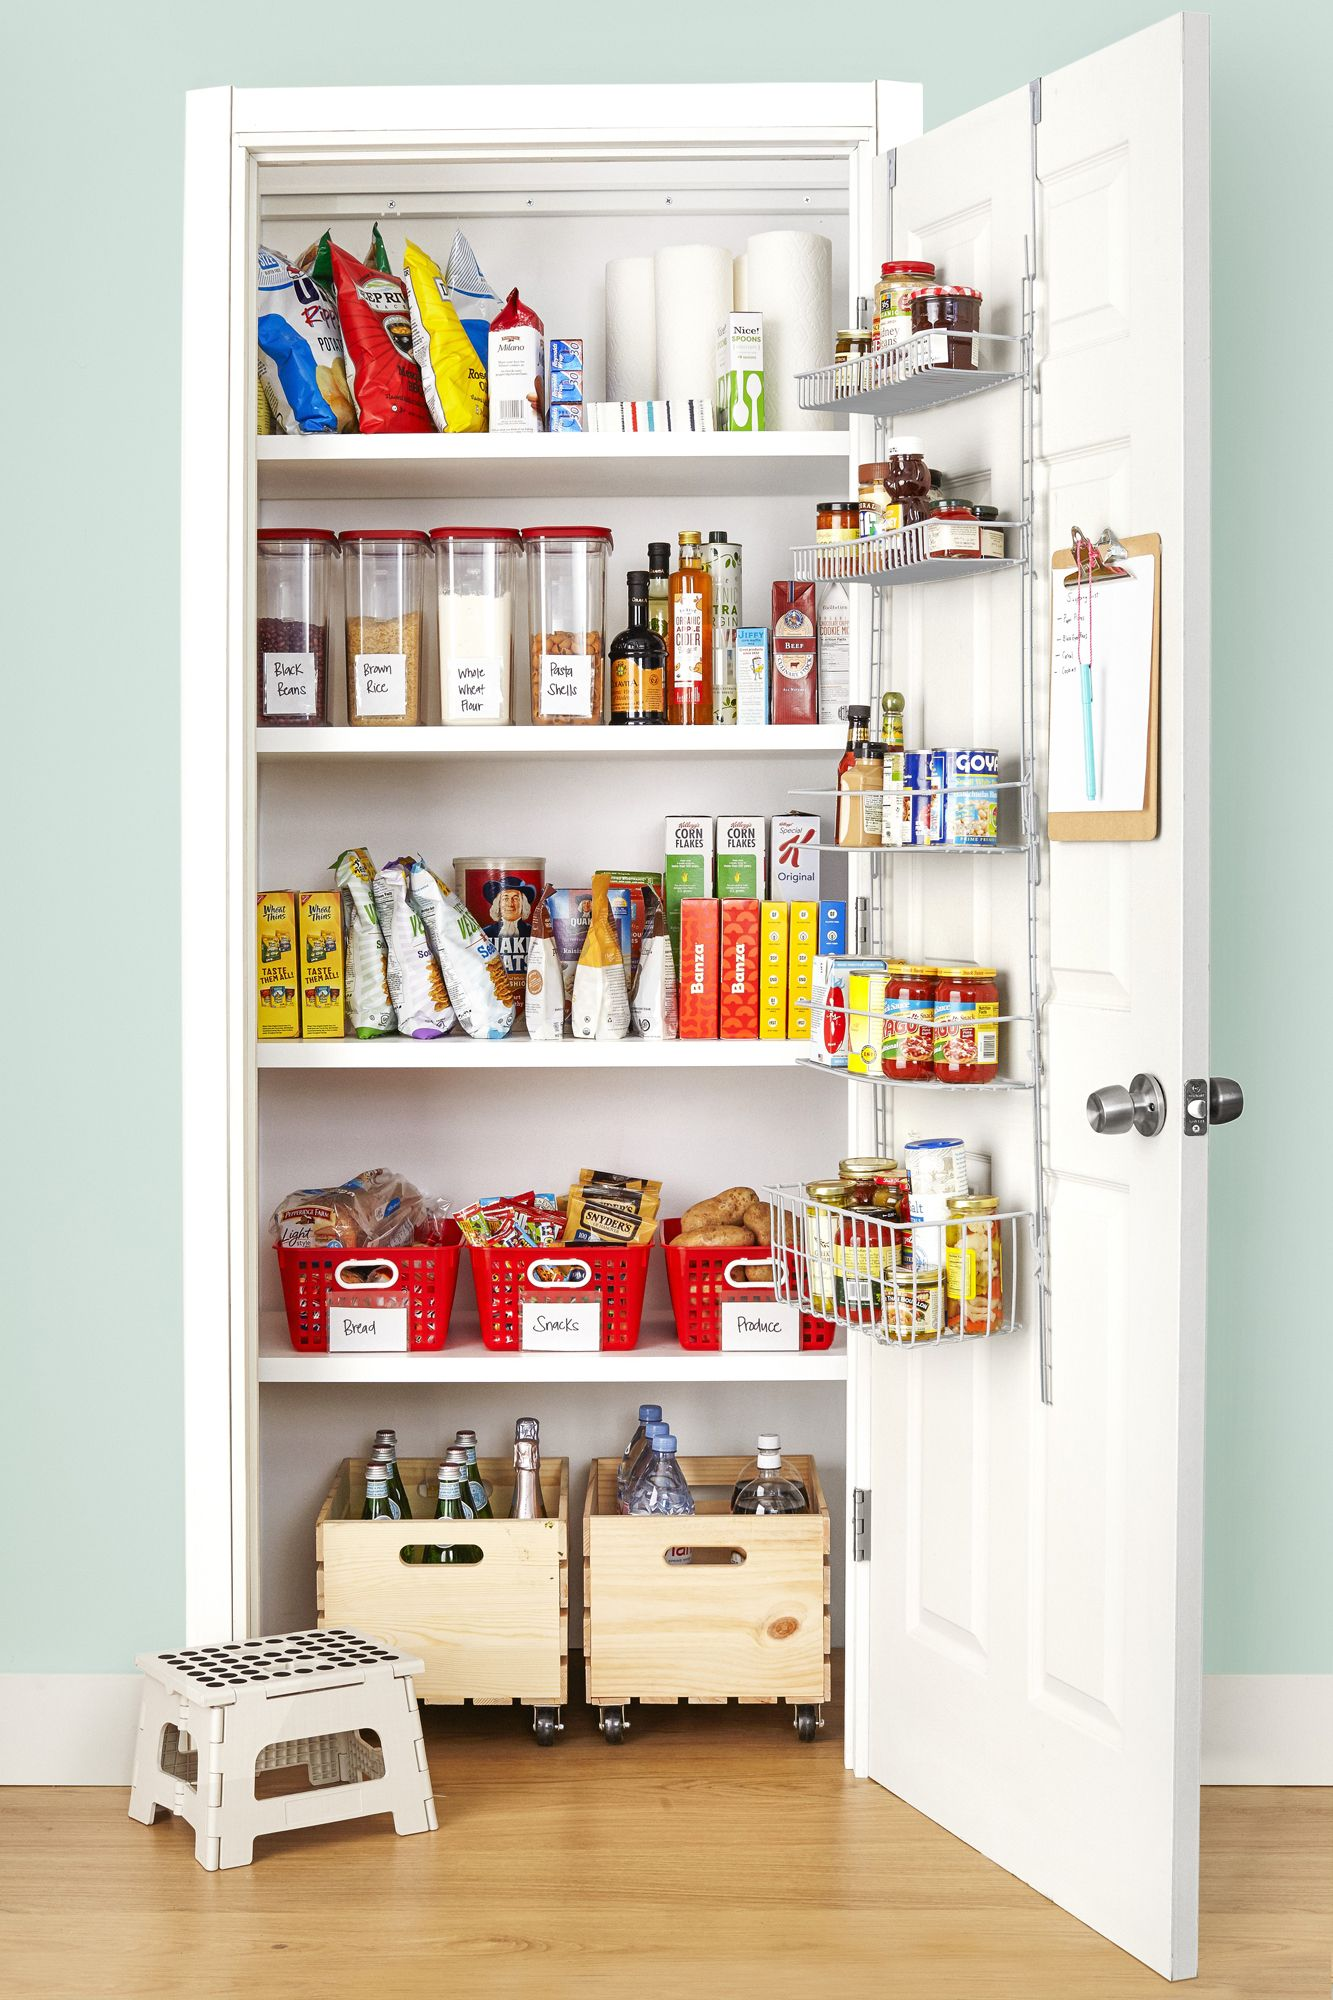 d3e575ea680 21 Kitchen Organization Ideas - Kitchen Organizing Tips and Tricks